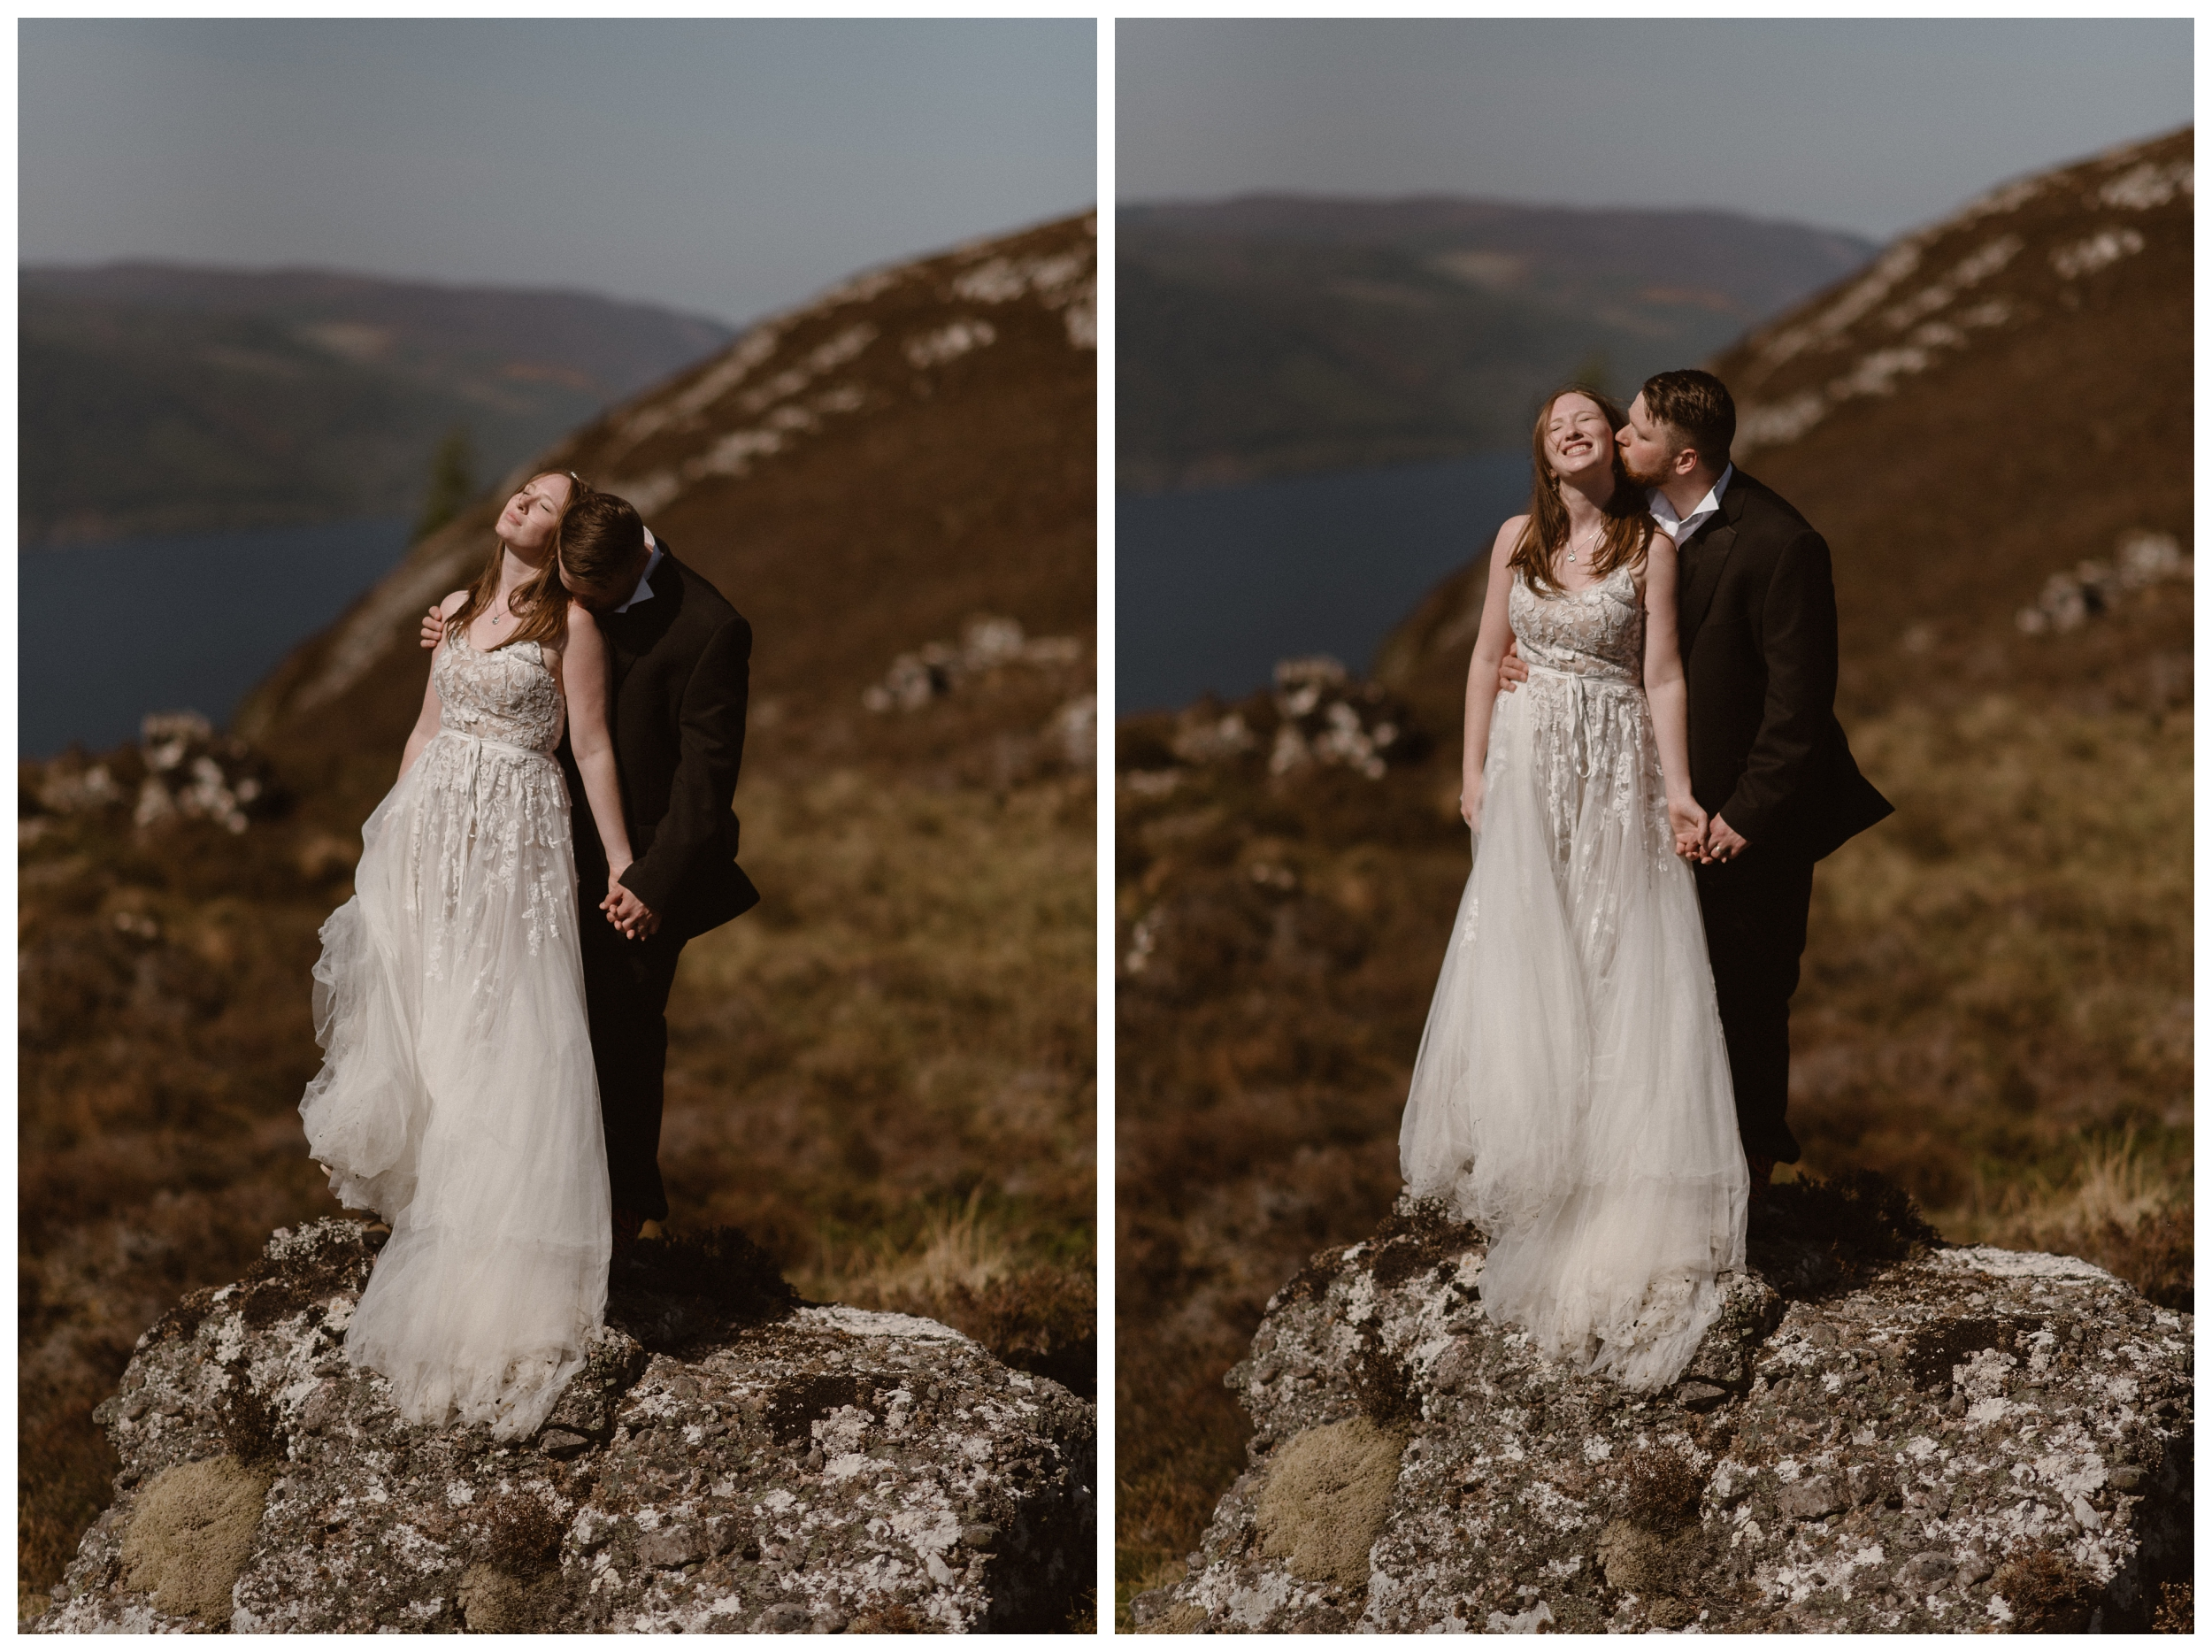 Elissa trekked all over the Scottish Highlands in her long tulle wedding gown for her destination elopement ceremony with Daniel. Photo by Maddie Mae, Adventure Instead.